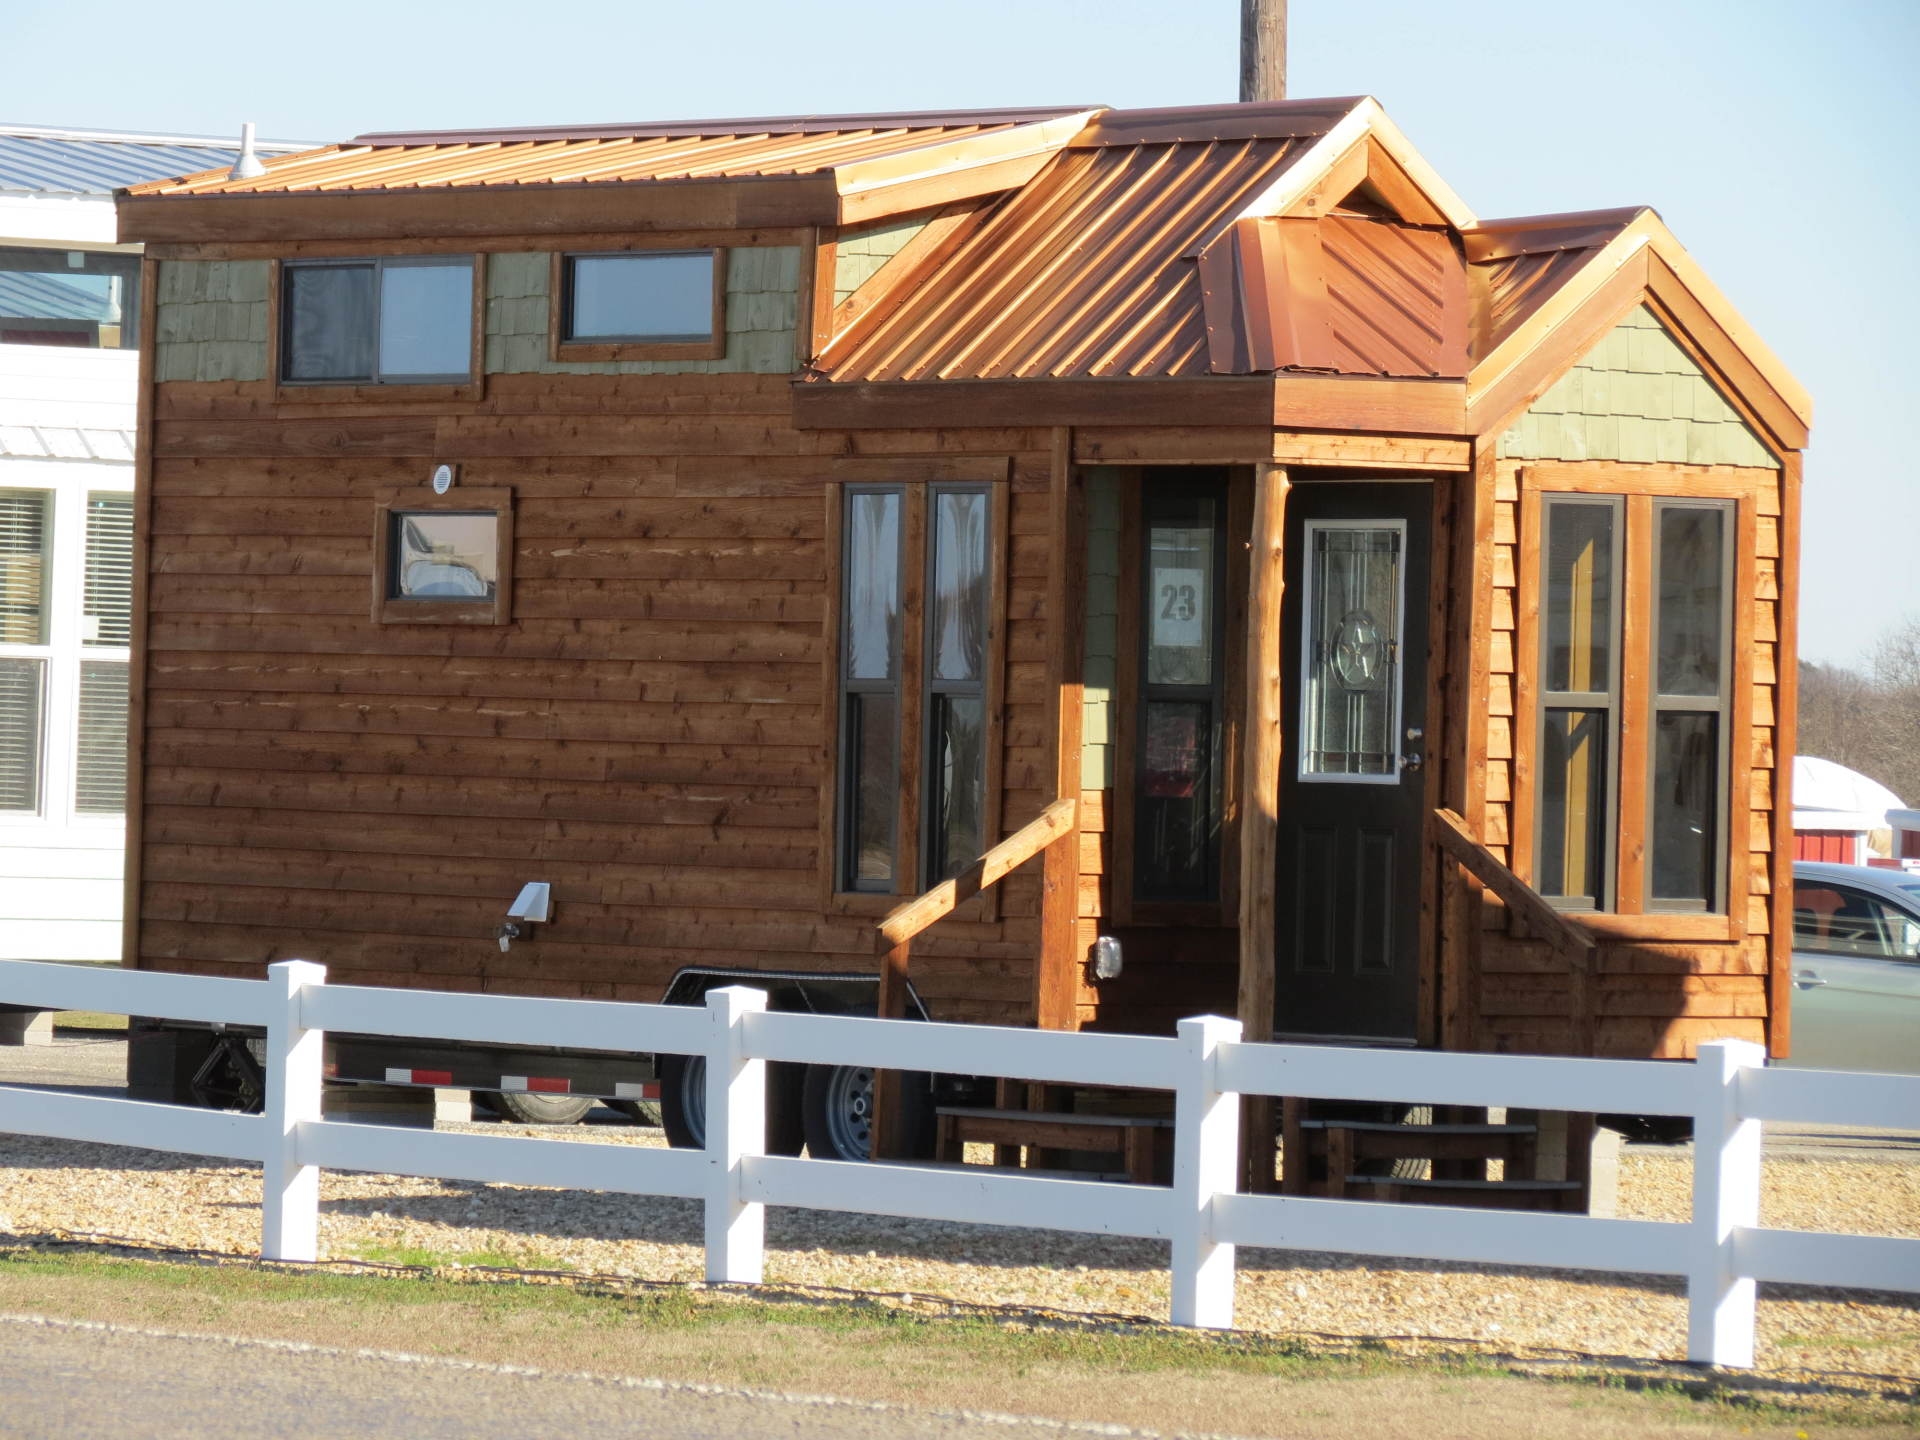 Recreational Resort Cottages and Cabins Towable Tiny Home on Wheels